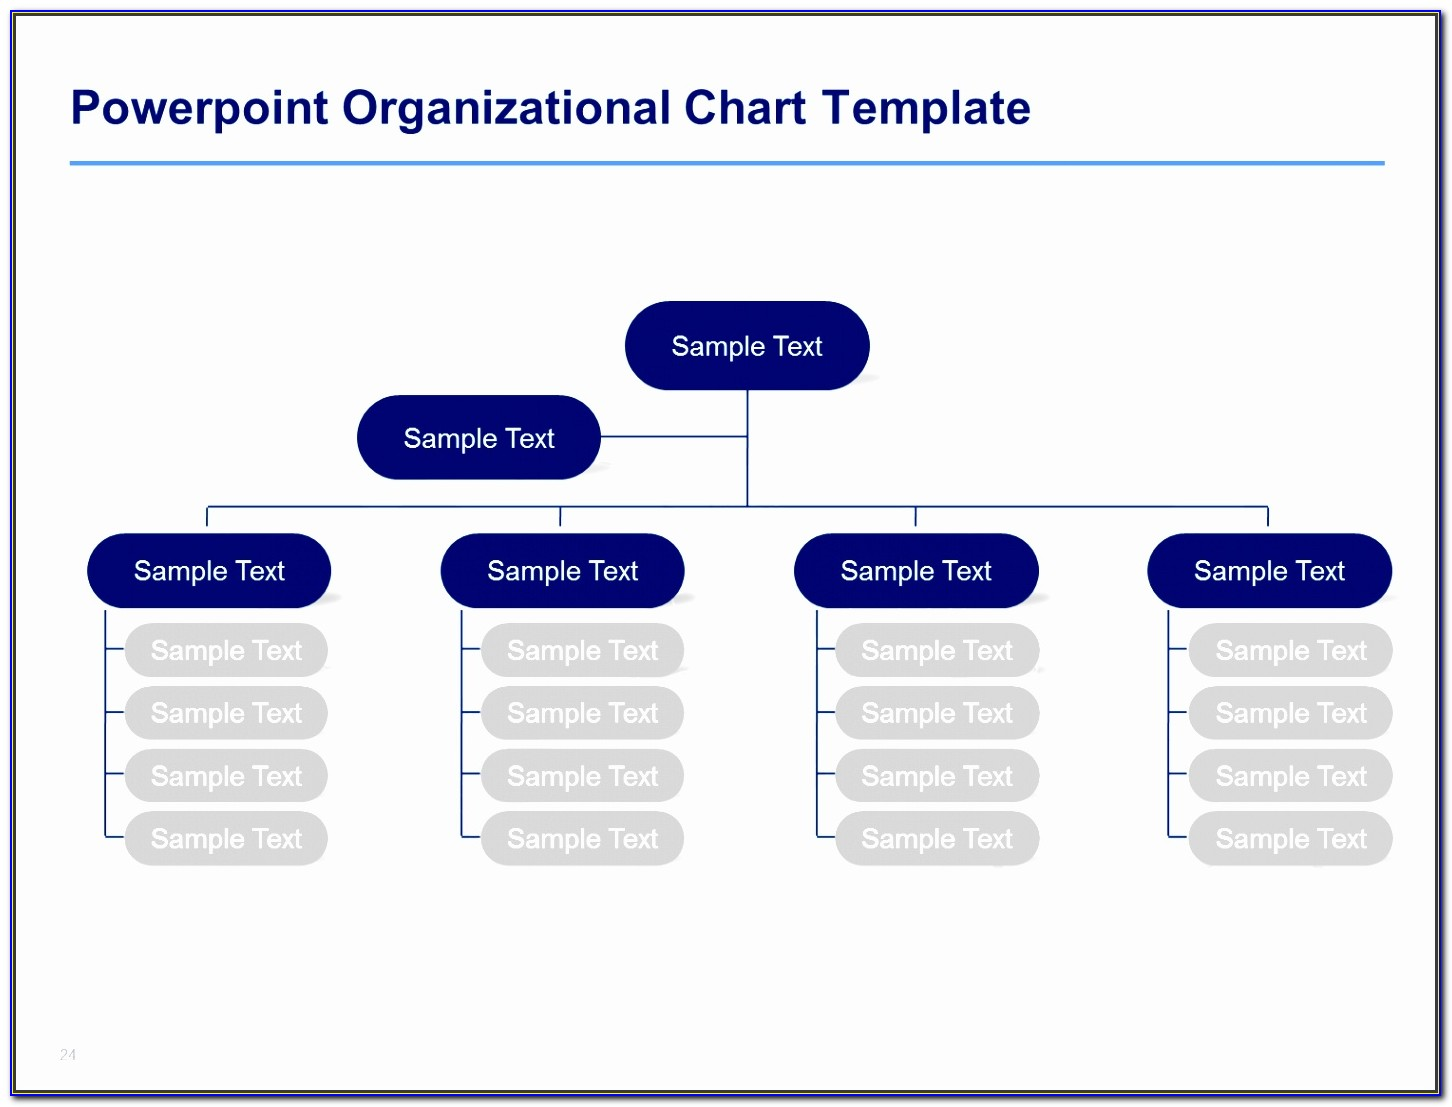 Powerpoint Organisation Chart Template Gkcyr Lovely Download & Reuse Now 10 Powerpoint Organizational Chart Templates